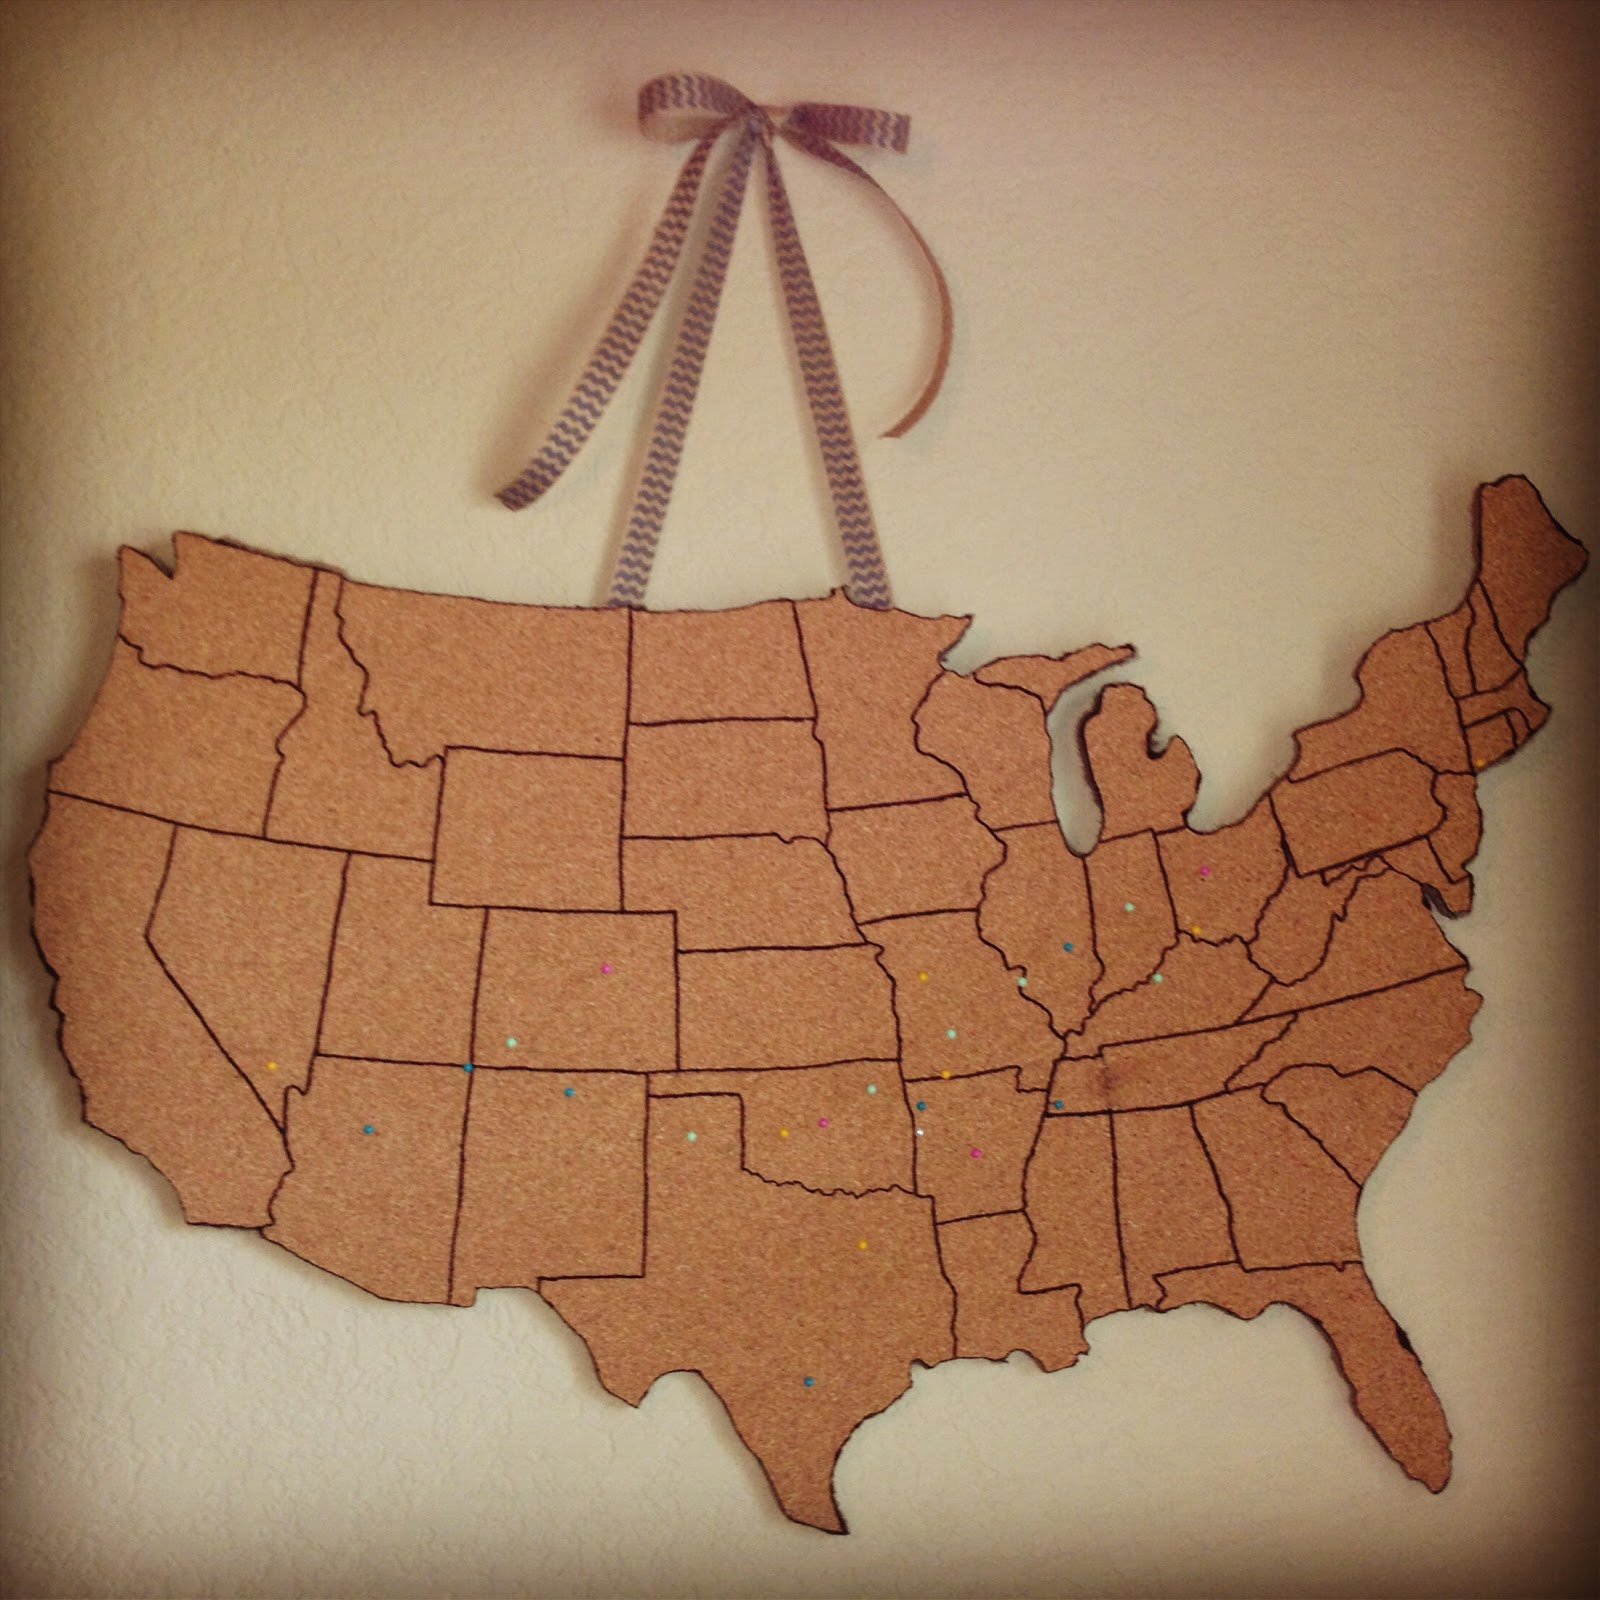 Karen's Pirate Life: DIY Corkboard Map Tutorial